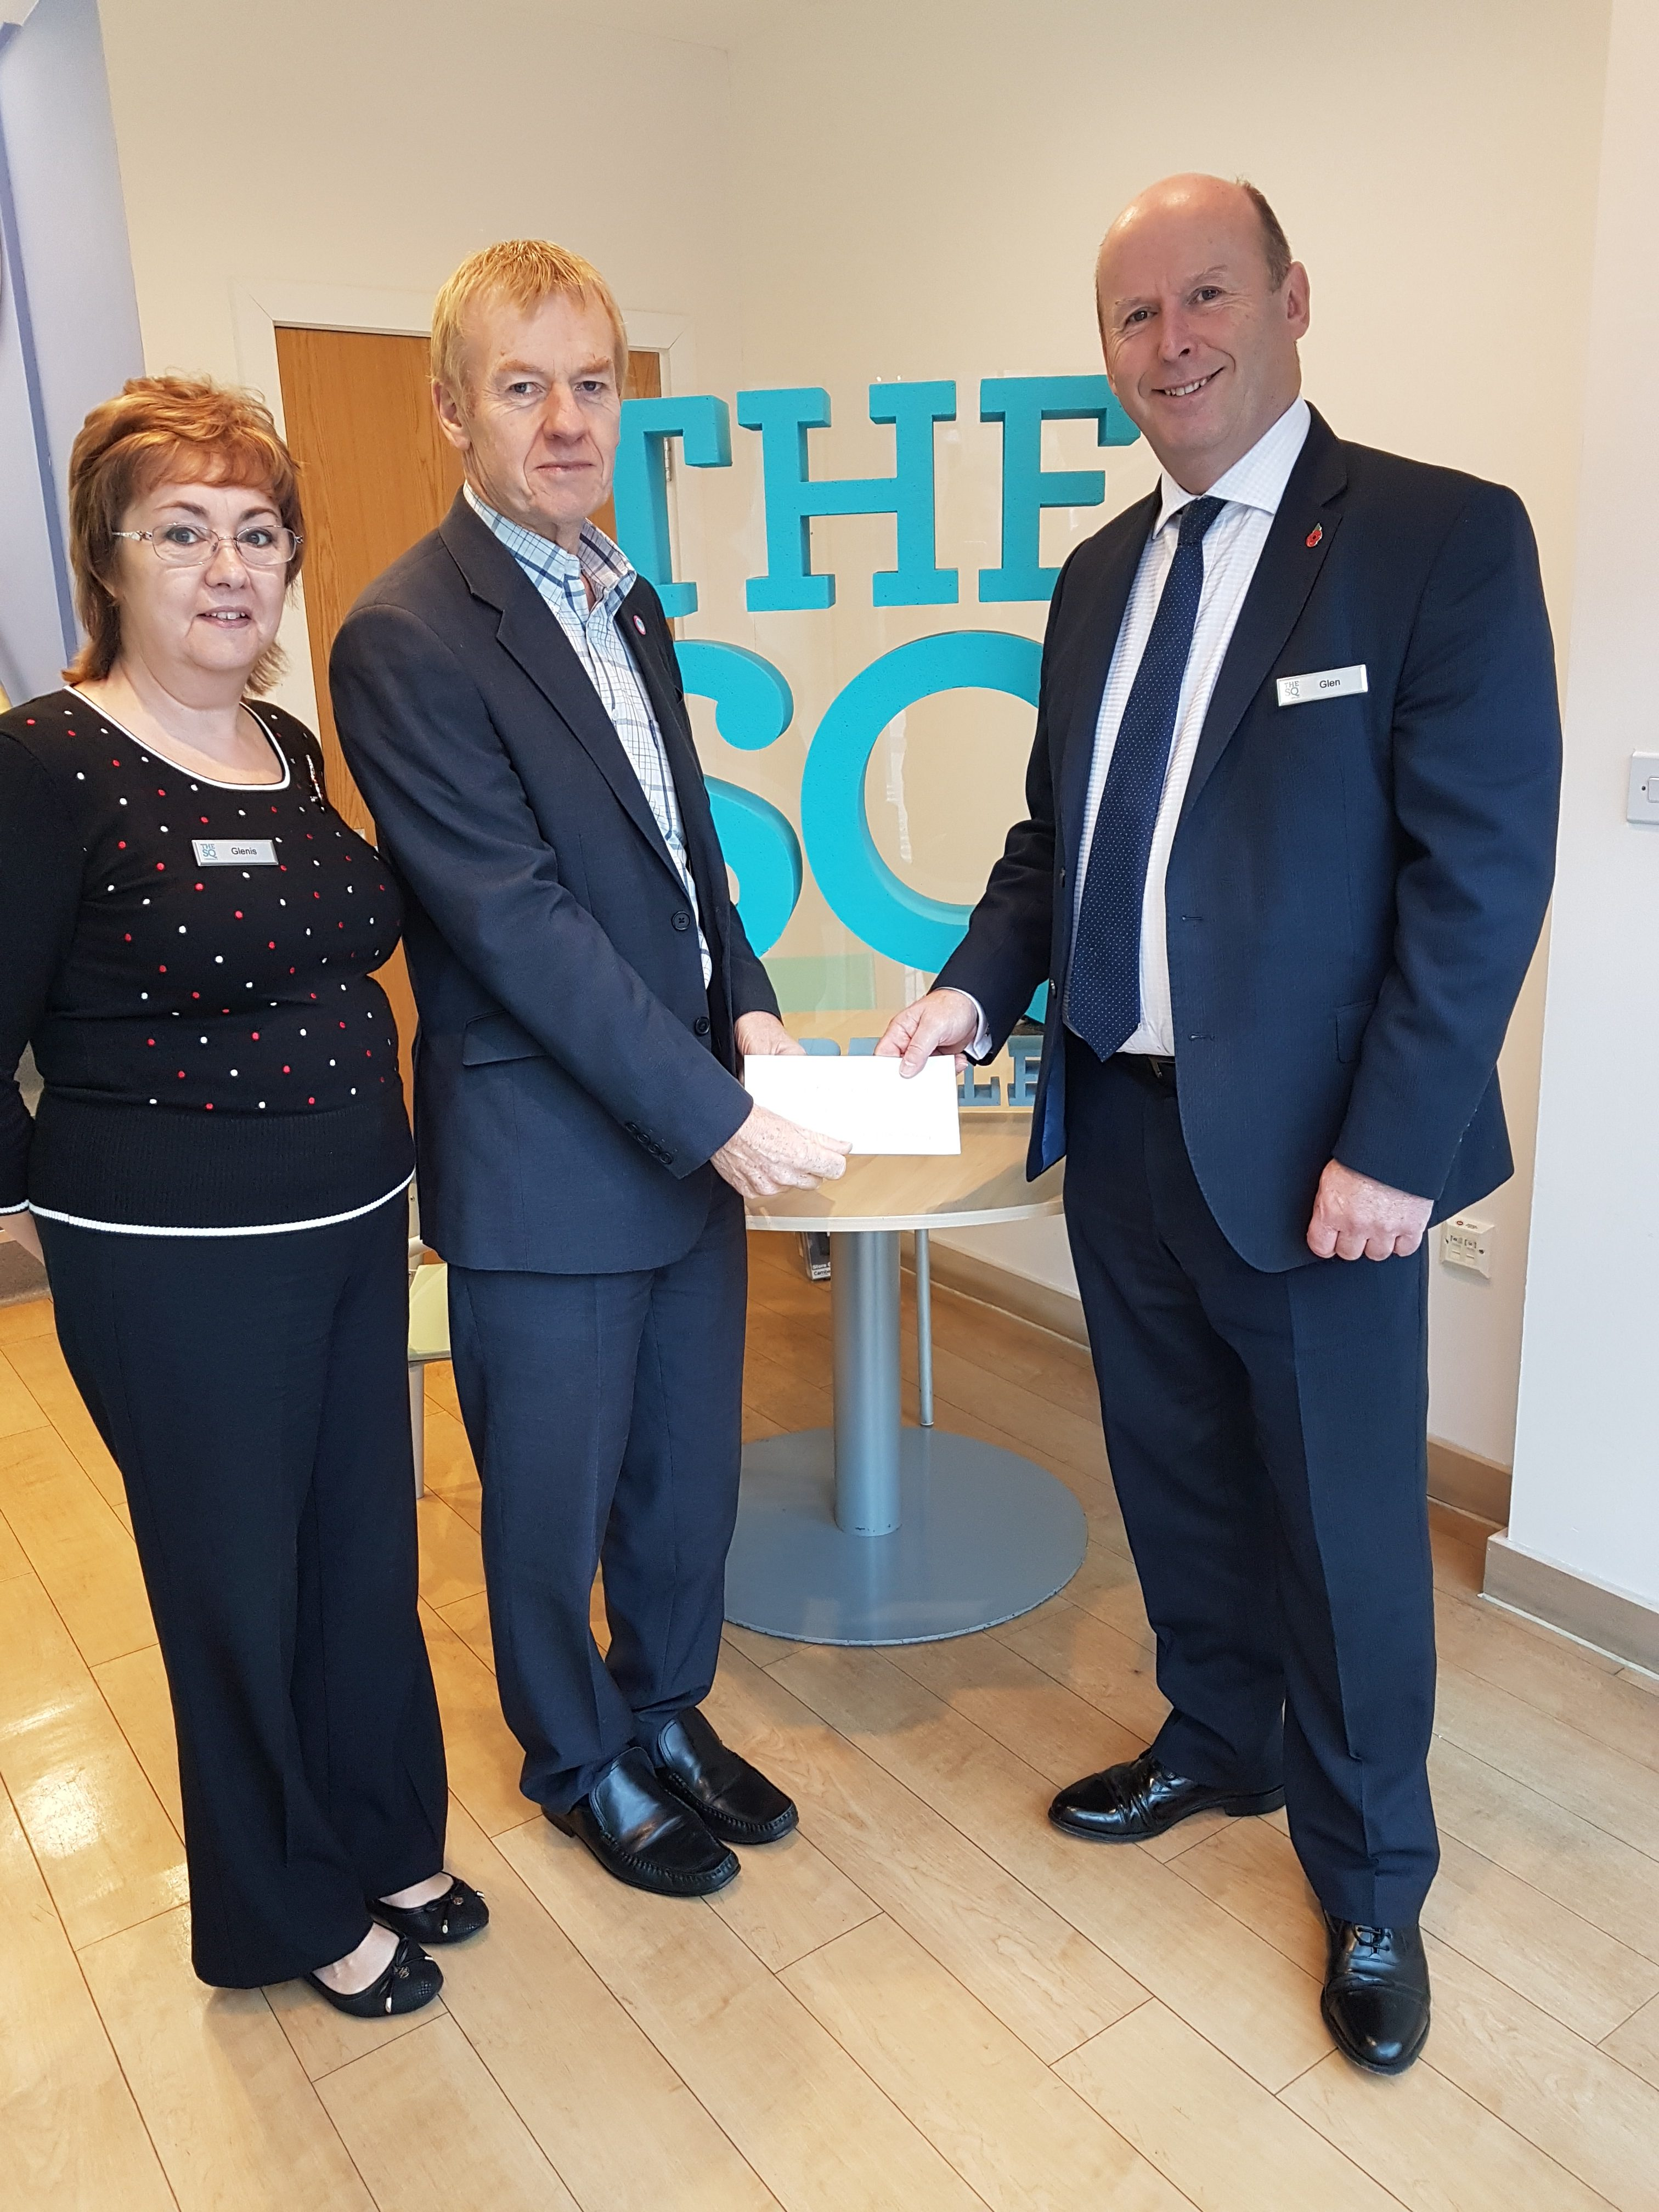 Glenis Grossmith, The Square Camberley Administration Manager, Keith Hanks, Frimley Park Hospital Fundraising Manager and Glen Fulton, The Square Camberley General Manager.